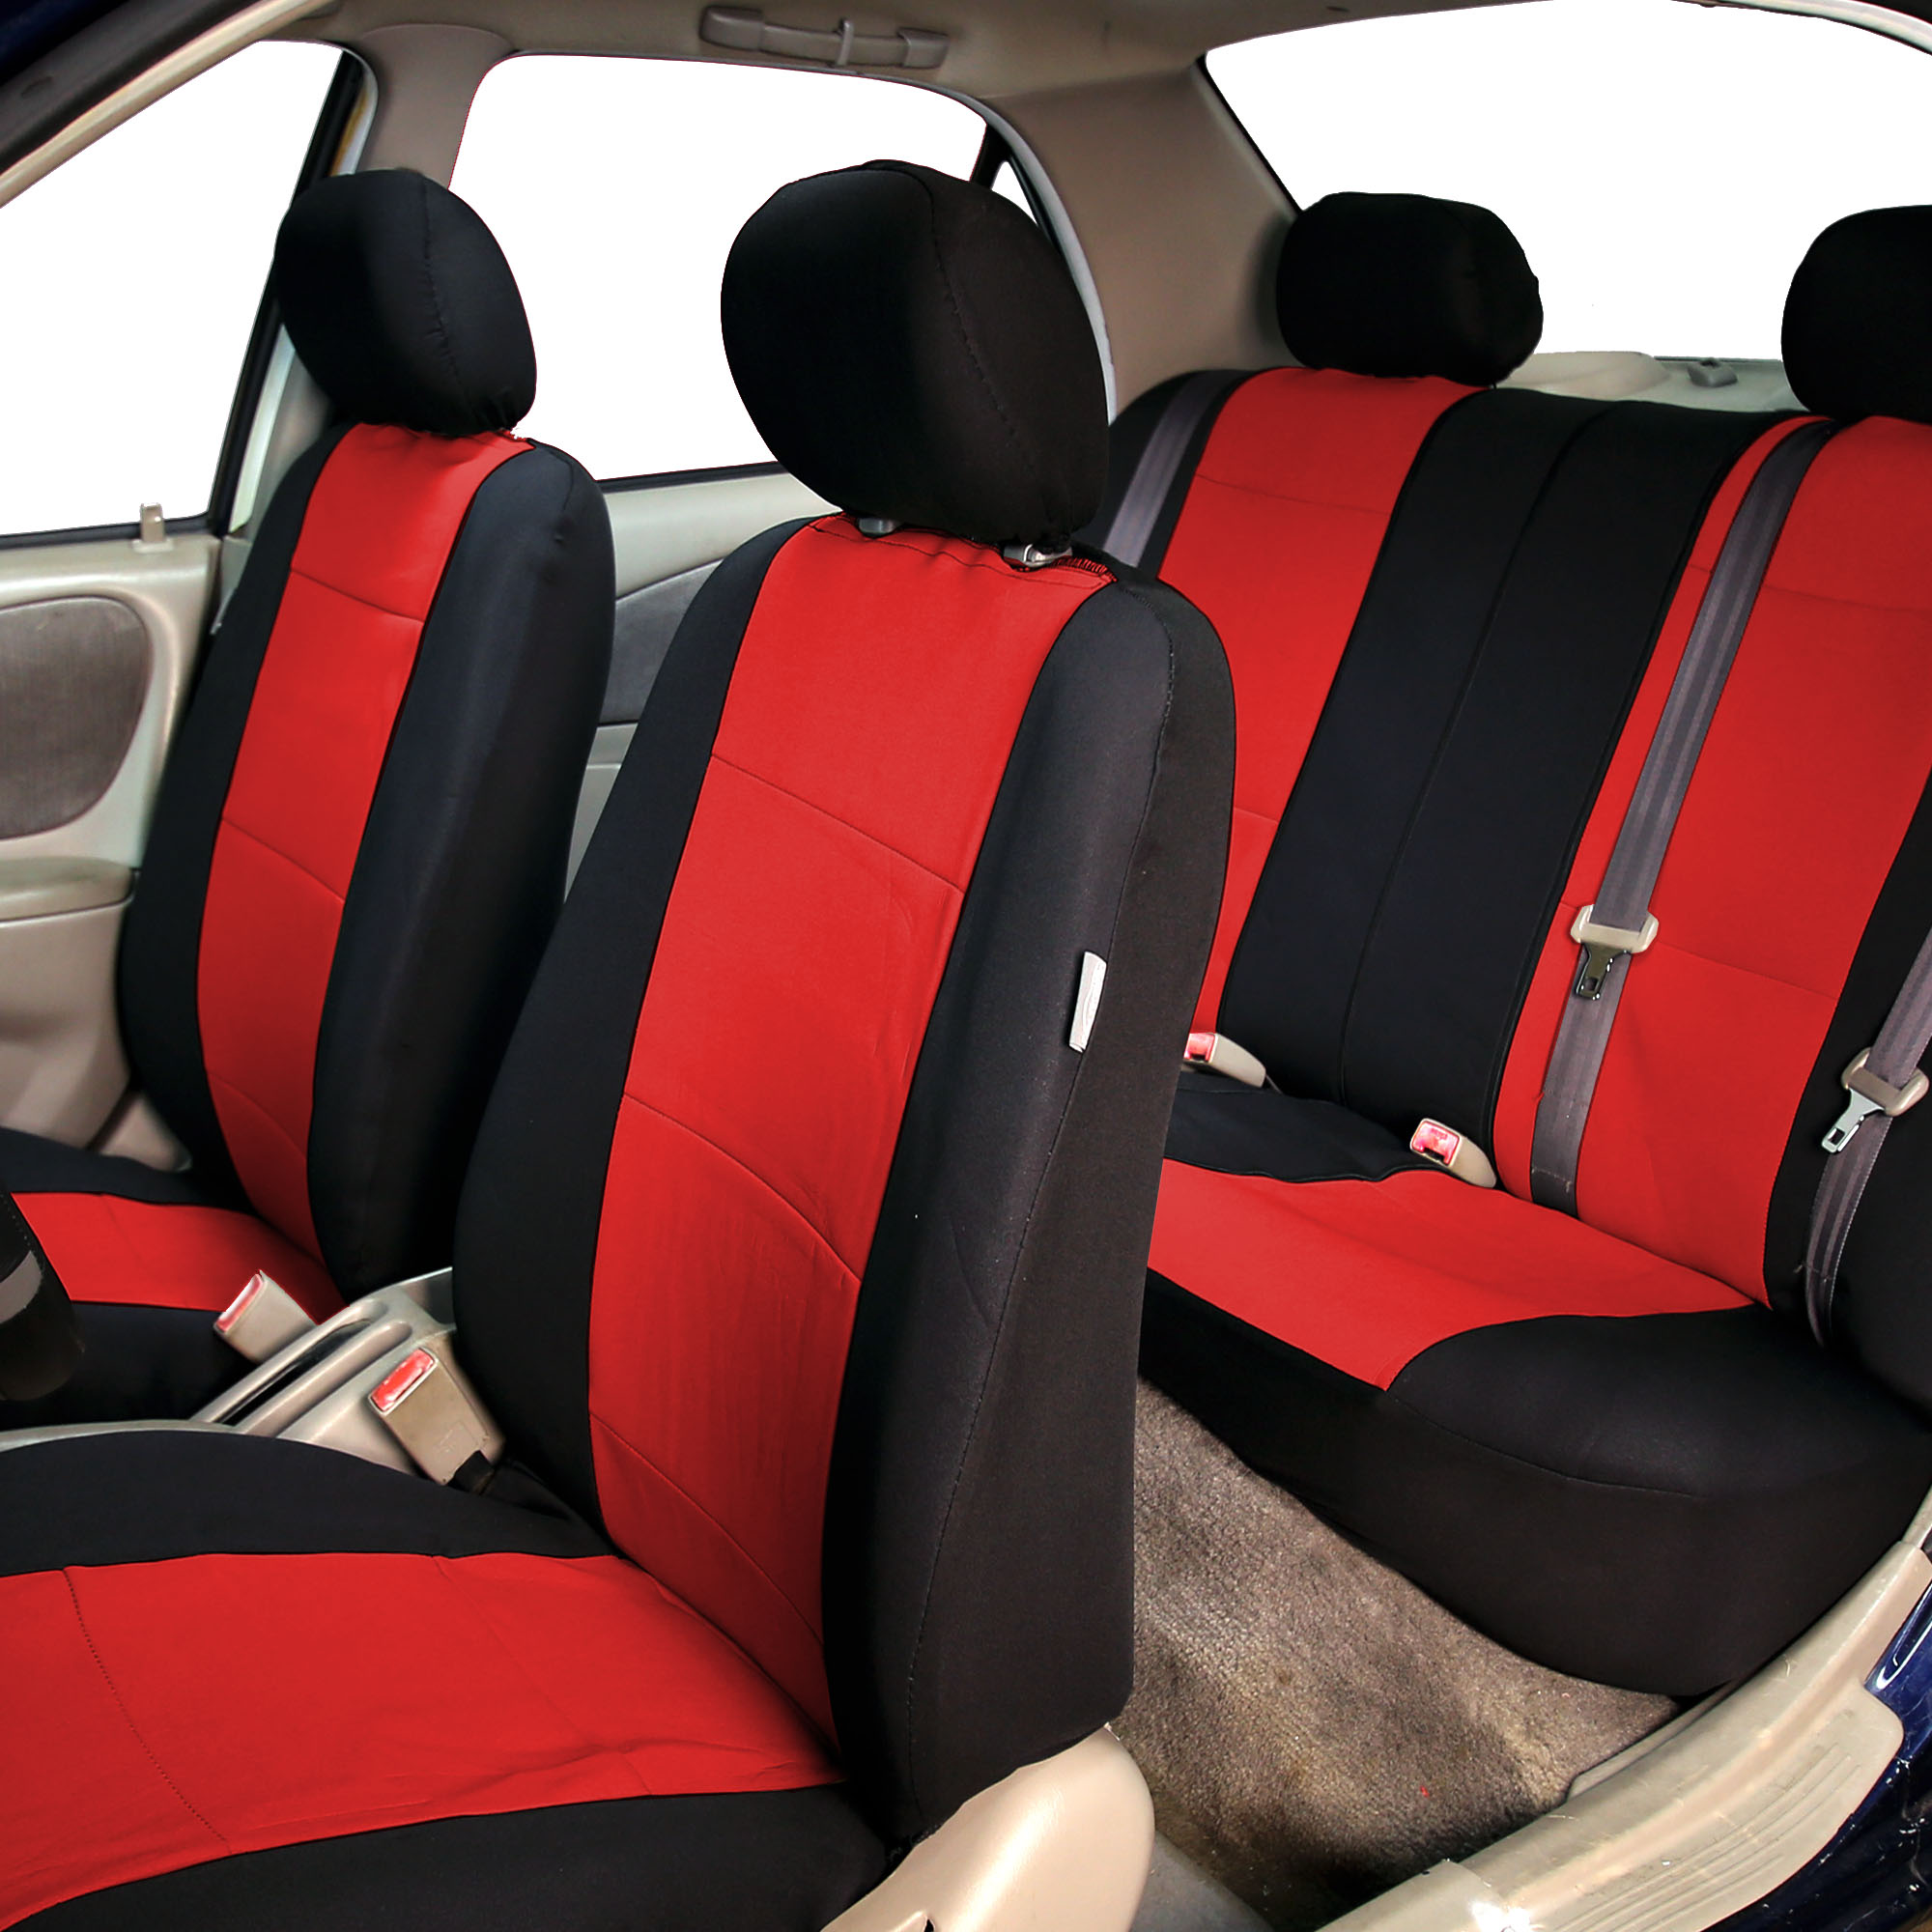 Car-Seat-Cover-Neoprene-Waterproof-Pet-Proof-Full-Set-Cover-With-Dash-Pad thumbnail 50